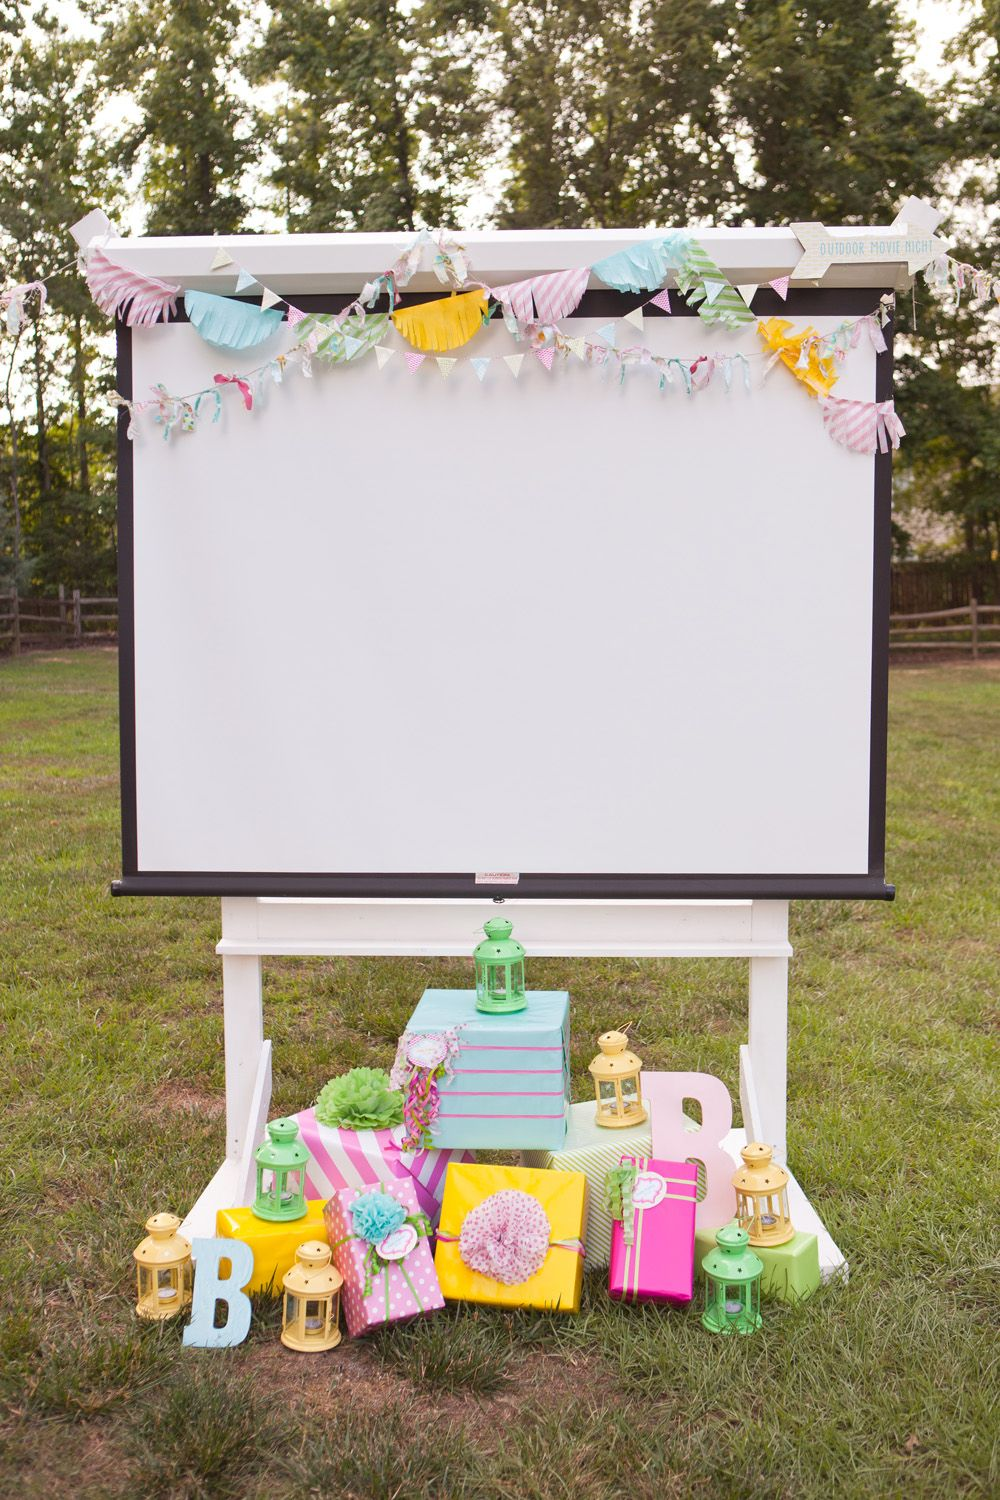 Movie screen with gifts | Home Ideaa | Pinterest | Outdoor movie ...